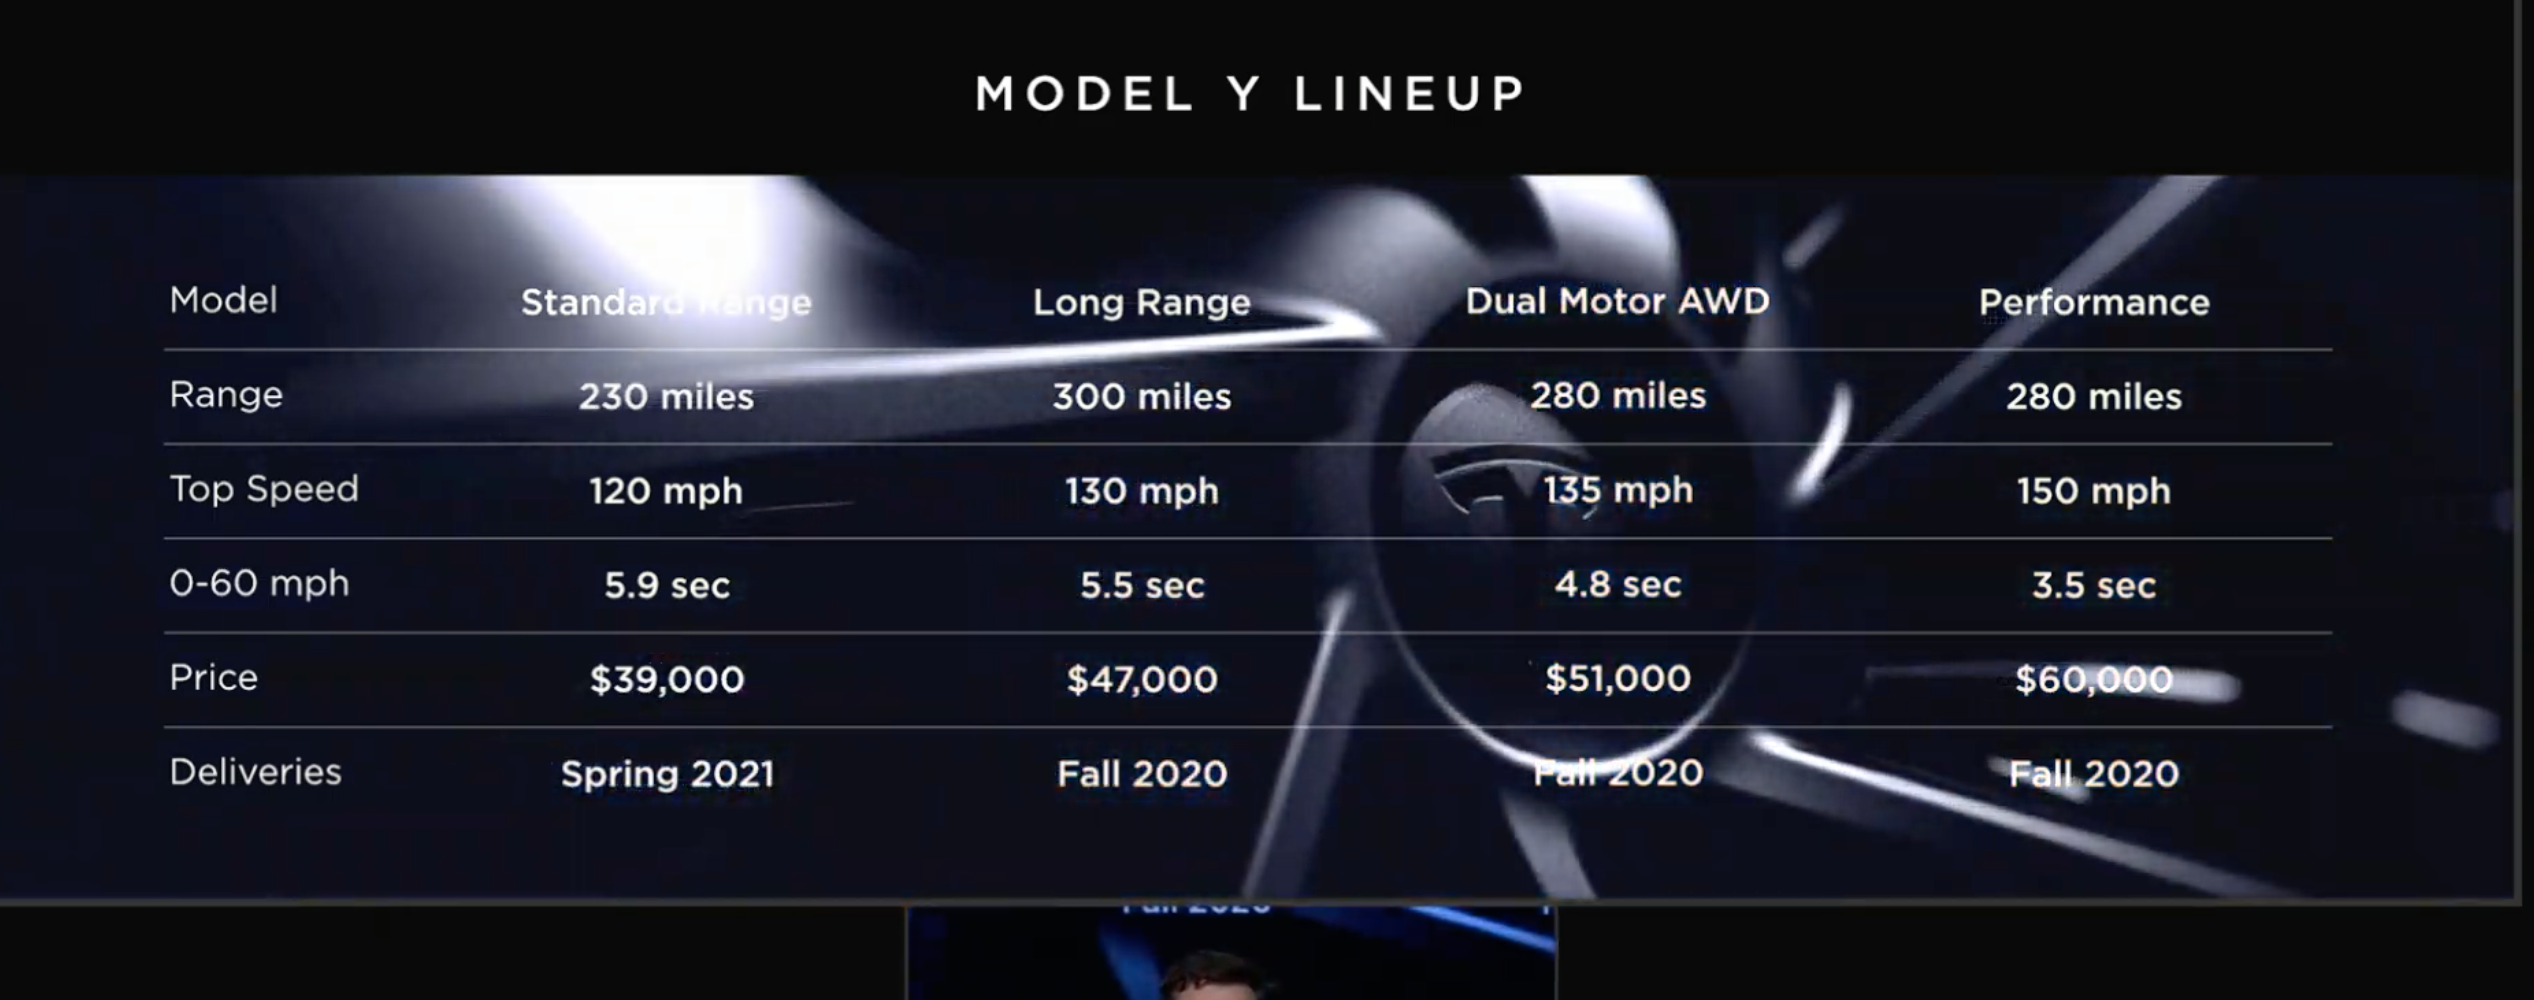 Musk didn\u0027t say where the Model Y would be produced, nor did he get into  other details beyond the vehicle specs and a vague timeline.